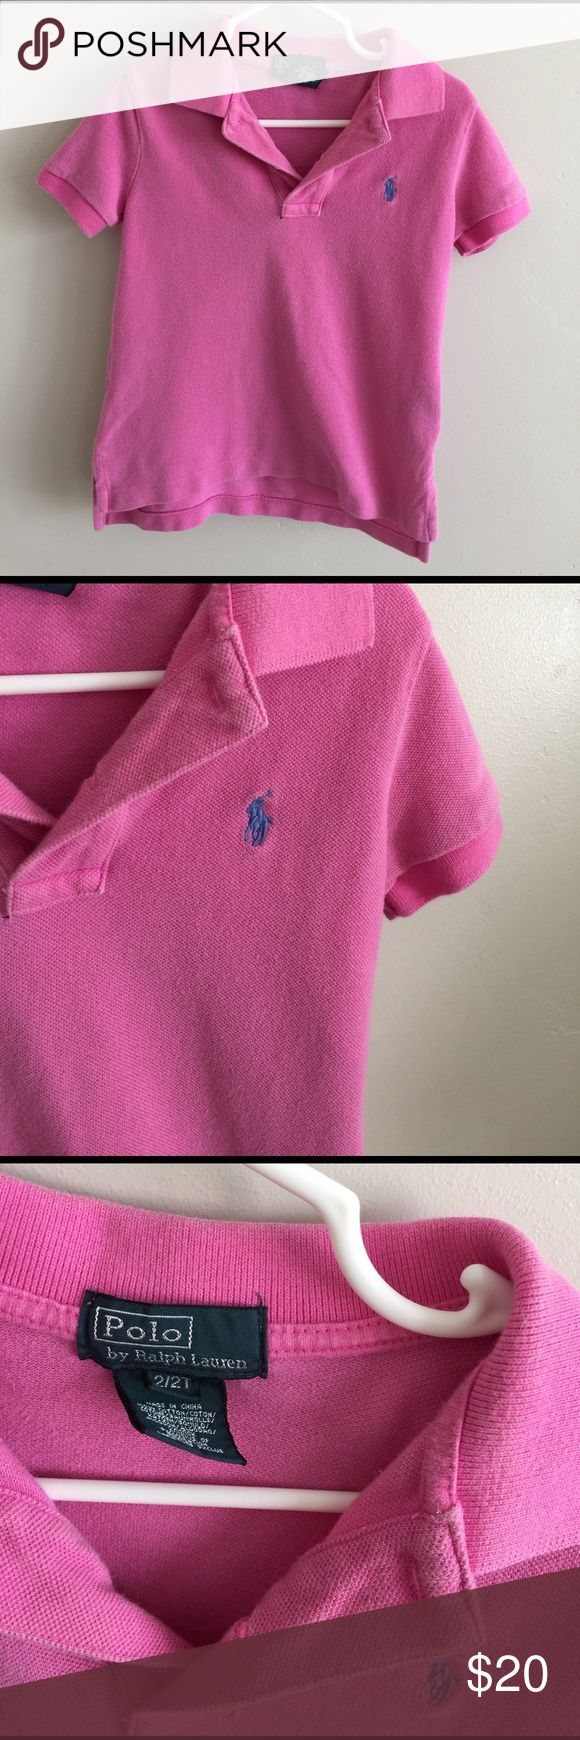 Pink polo shirt 2T Preowned please see pictures Polo by Ralph Lauren Shirts & Tops Polos